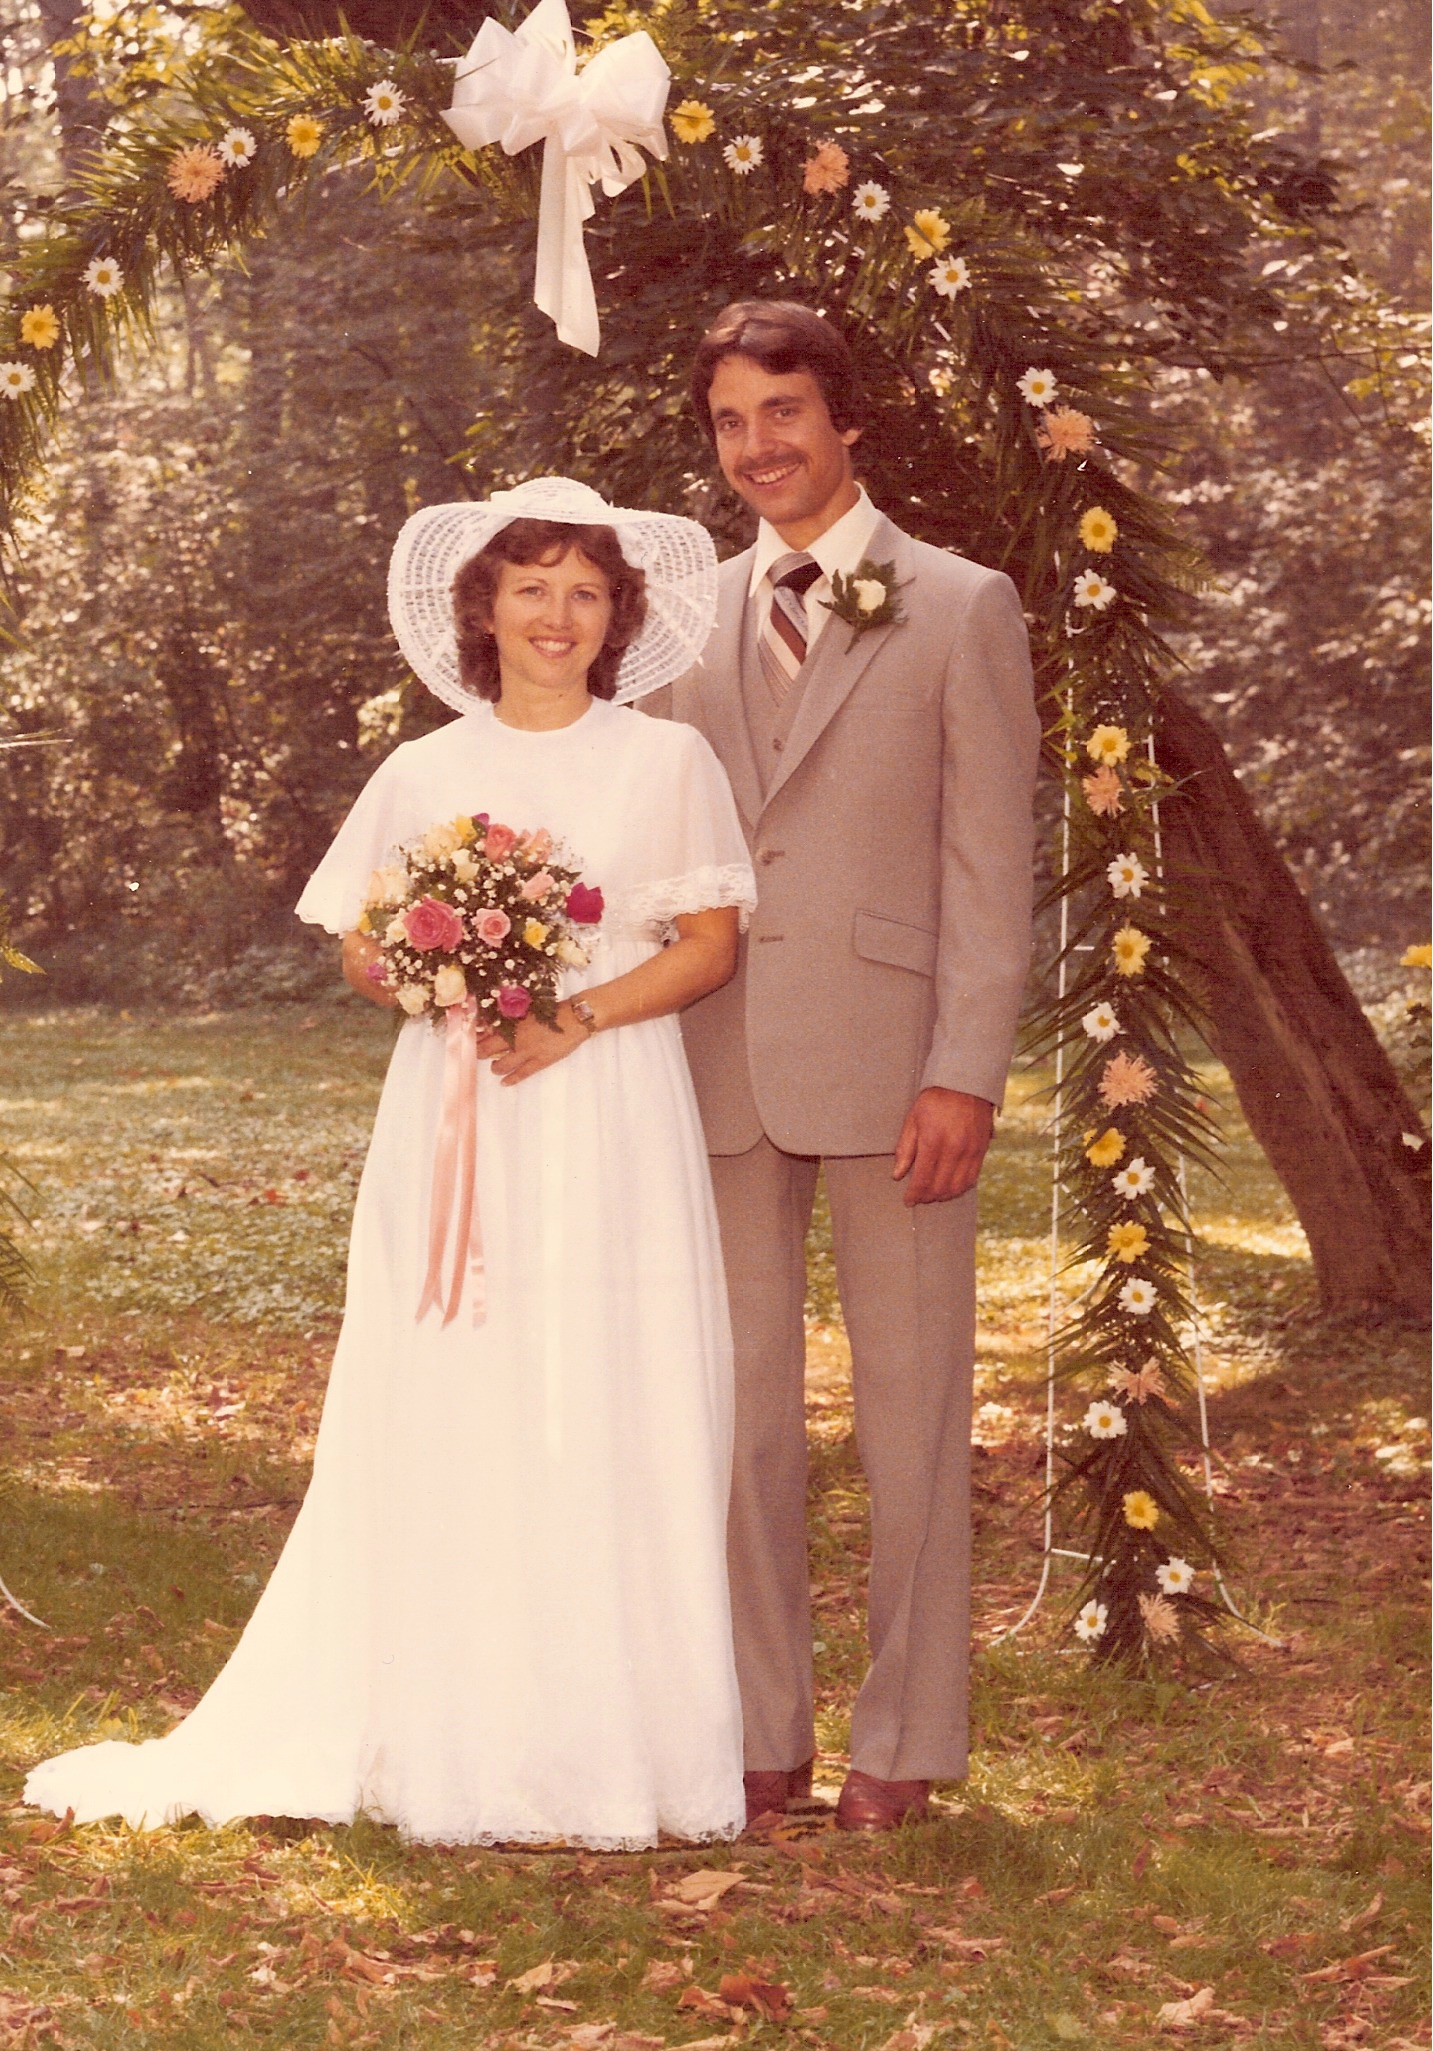 OUR WEDDING DAY - SEPT. 6, 1980 - Lancaster, PA.